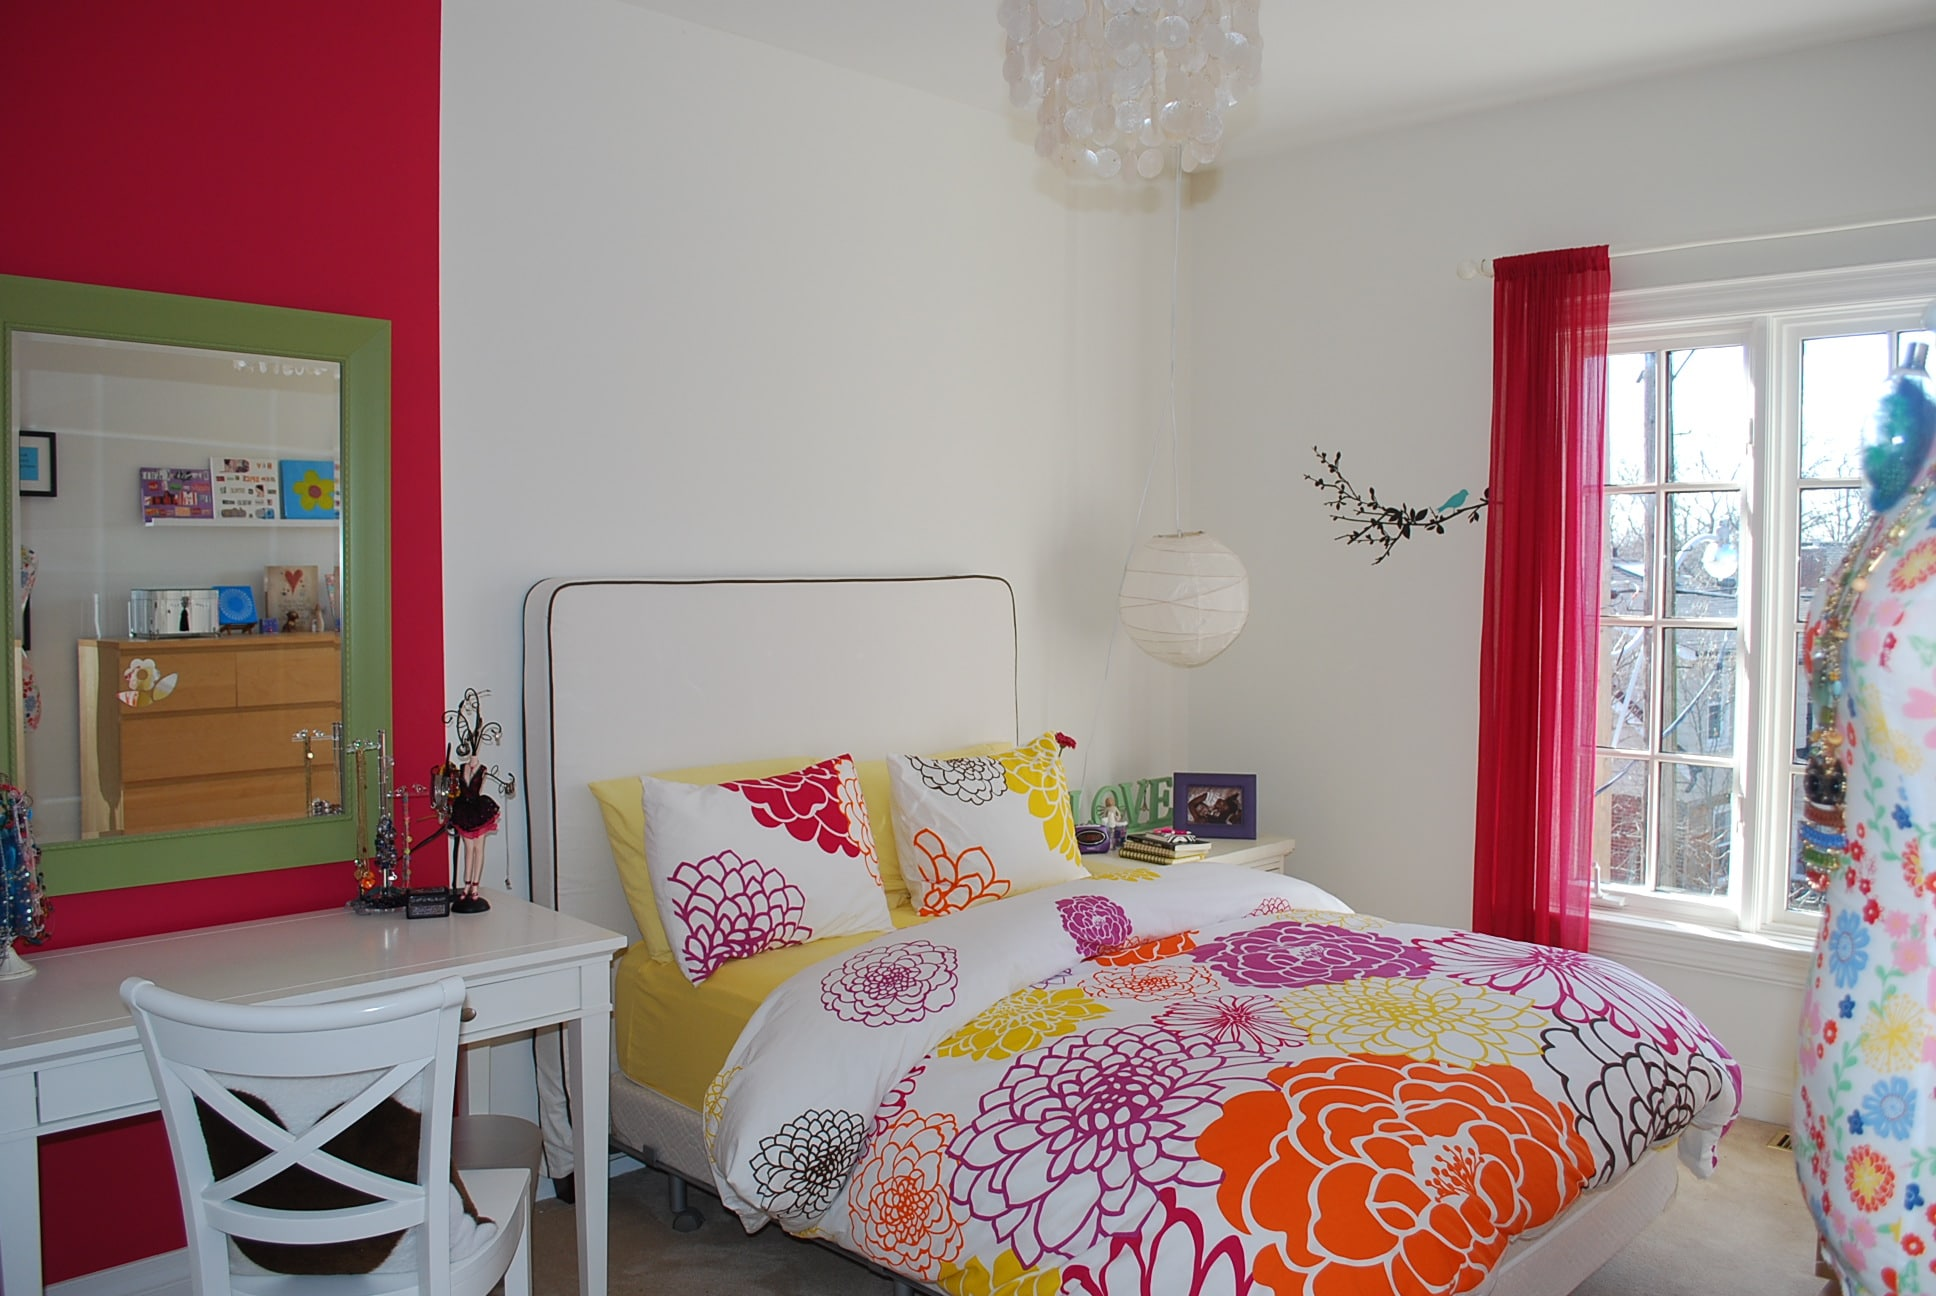 girl room blanco con flores